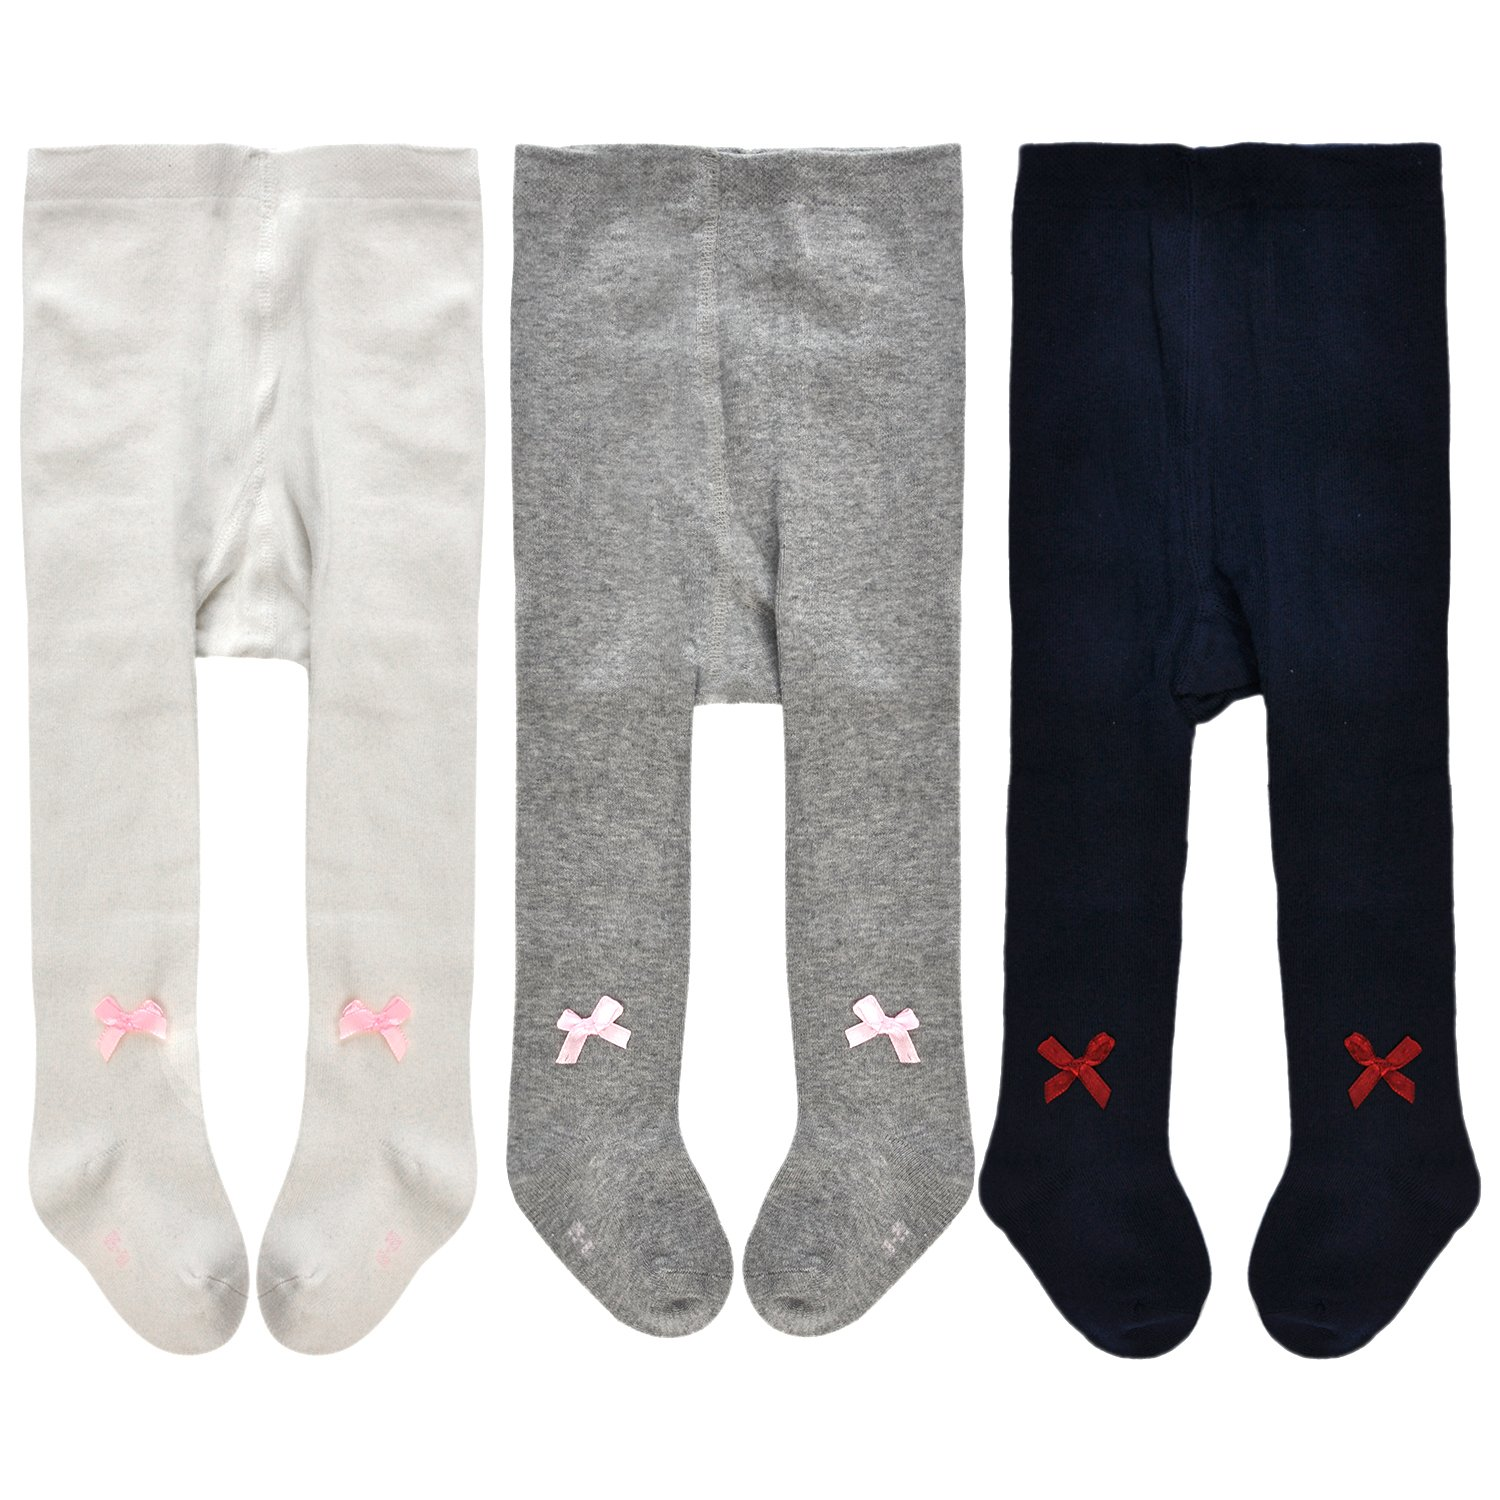 Epeius Little Kids Girls 3 Pack Seamless Bowknot Cotton Tights for 2-4 Years,White/Navy/Grey